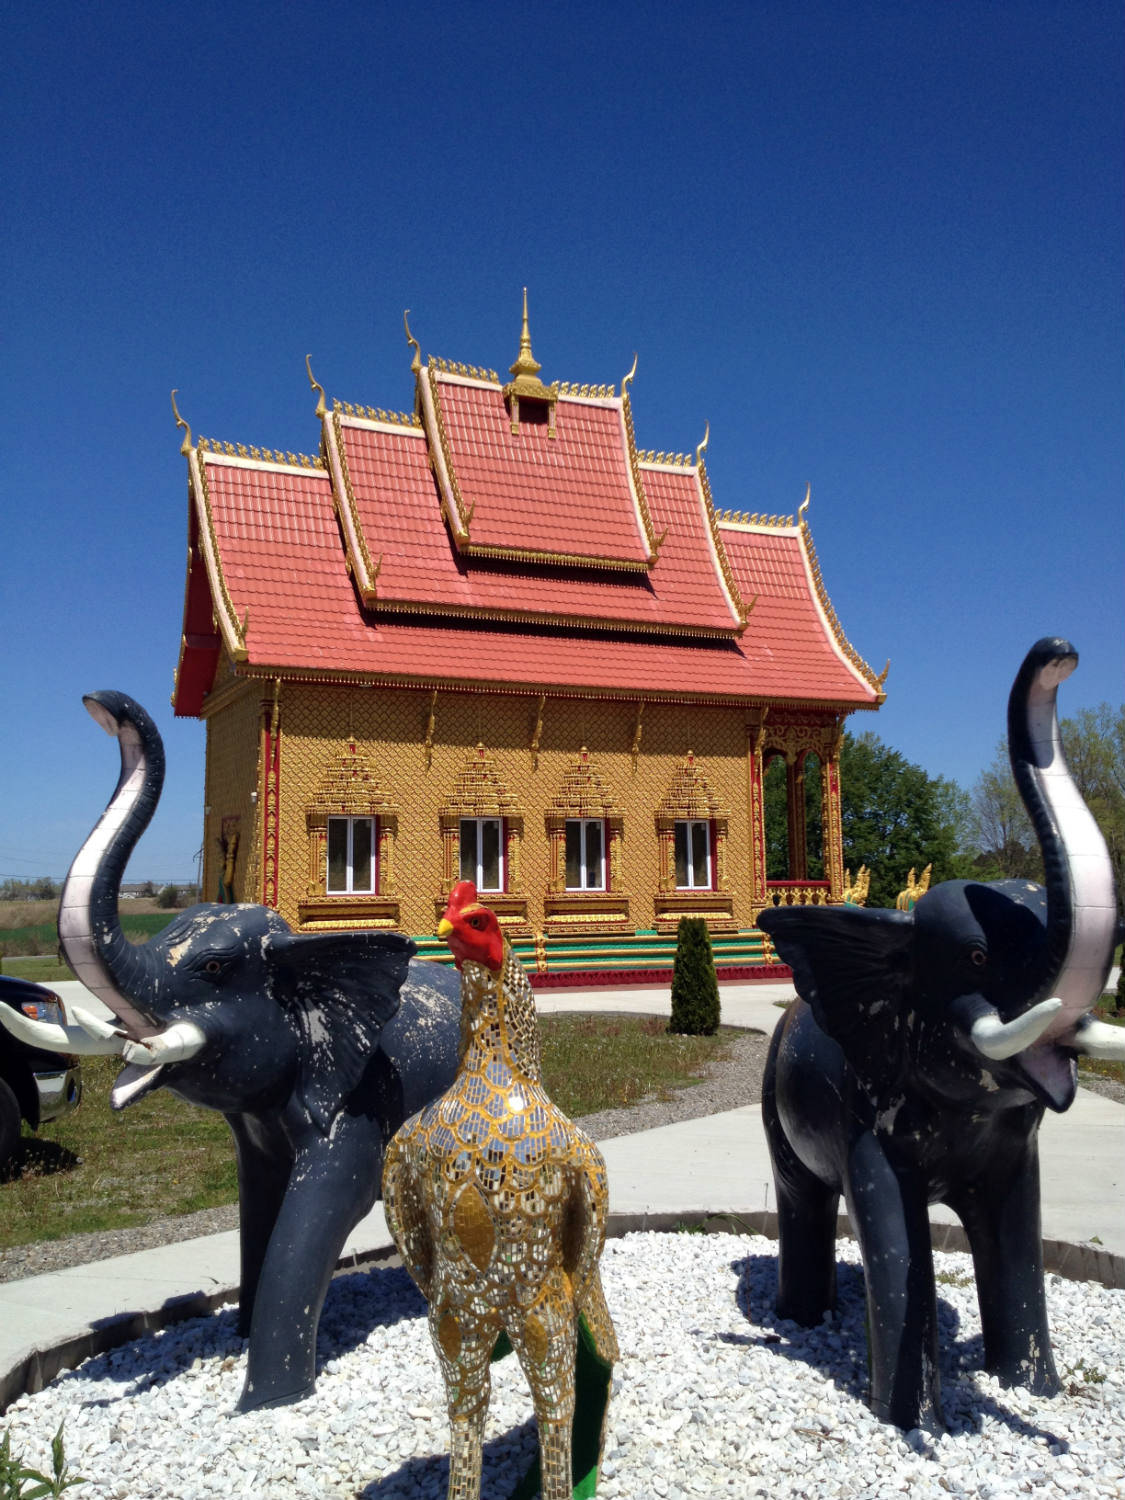 Astrological Statues at Wat Pa Lao Buddhadham in Rush, New York